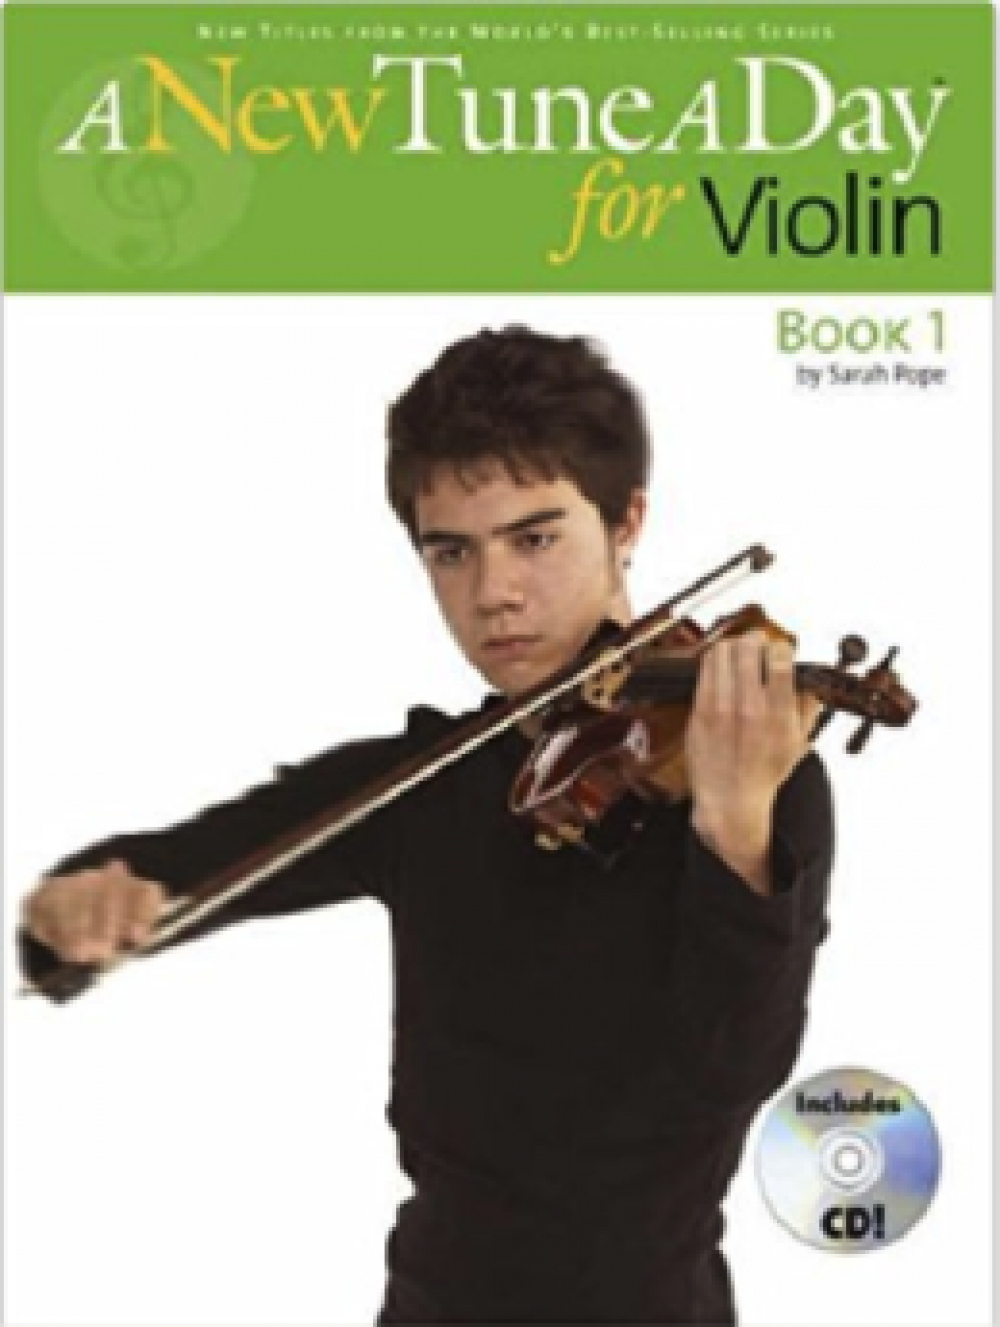 🎓 Attention Beginners! Learn Violin Online With These Amazing Resources